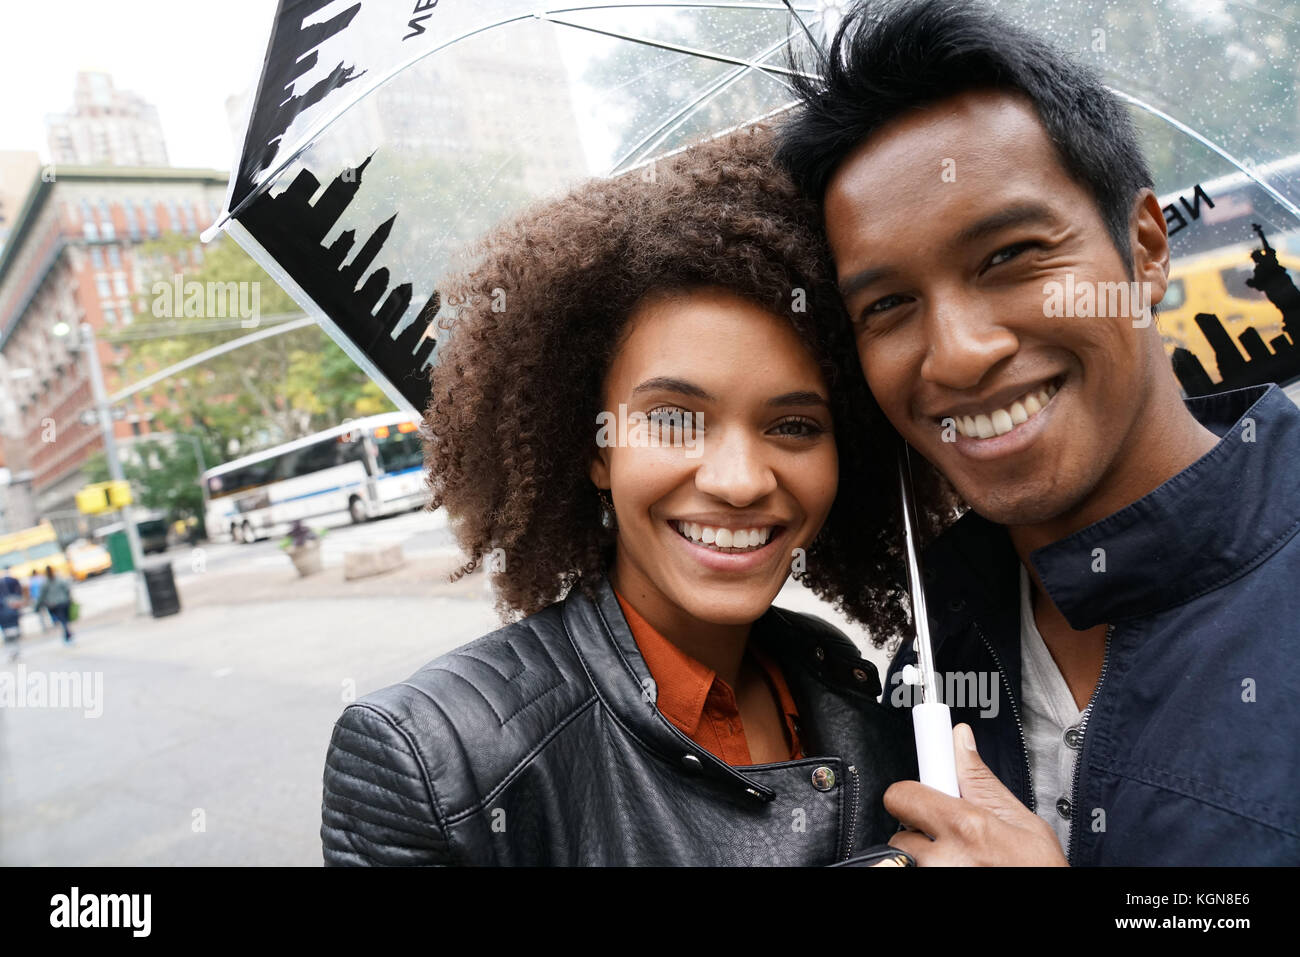 Ethnic couple walking in New york city street on rainy day - Stock Image